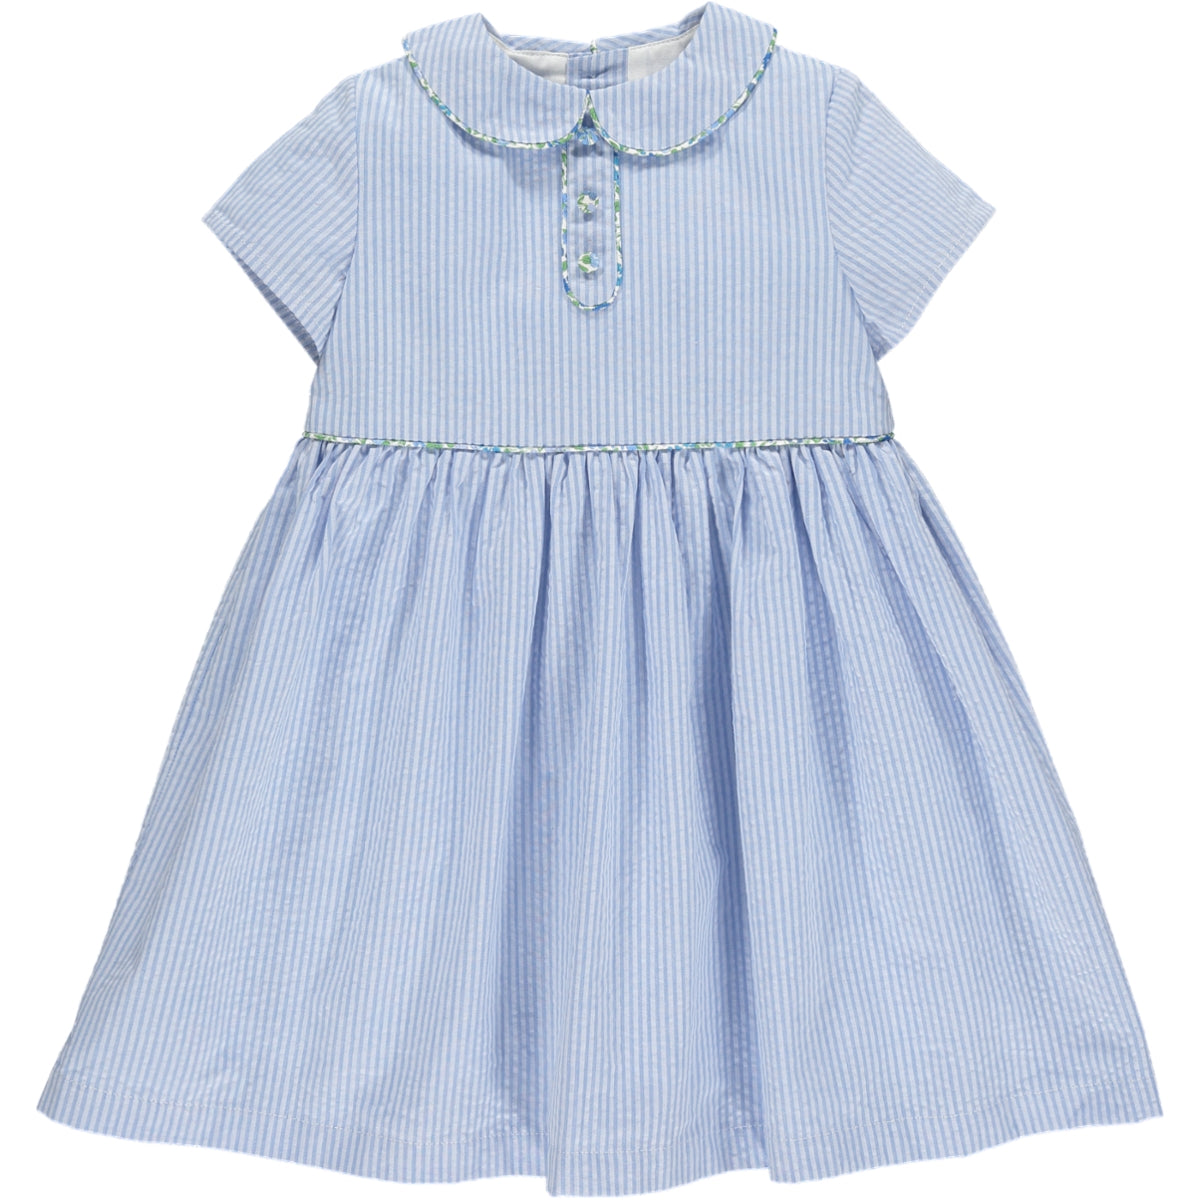 Bristol Dress Light Blue Seersucker